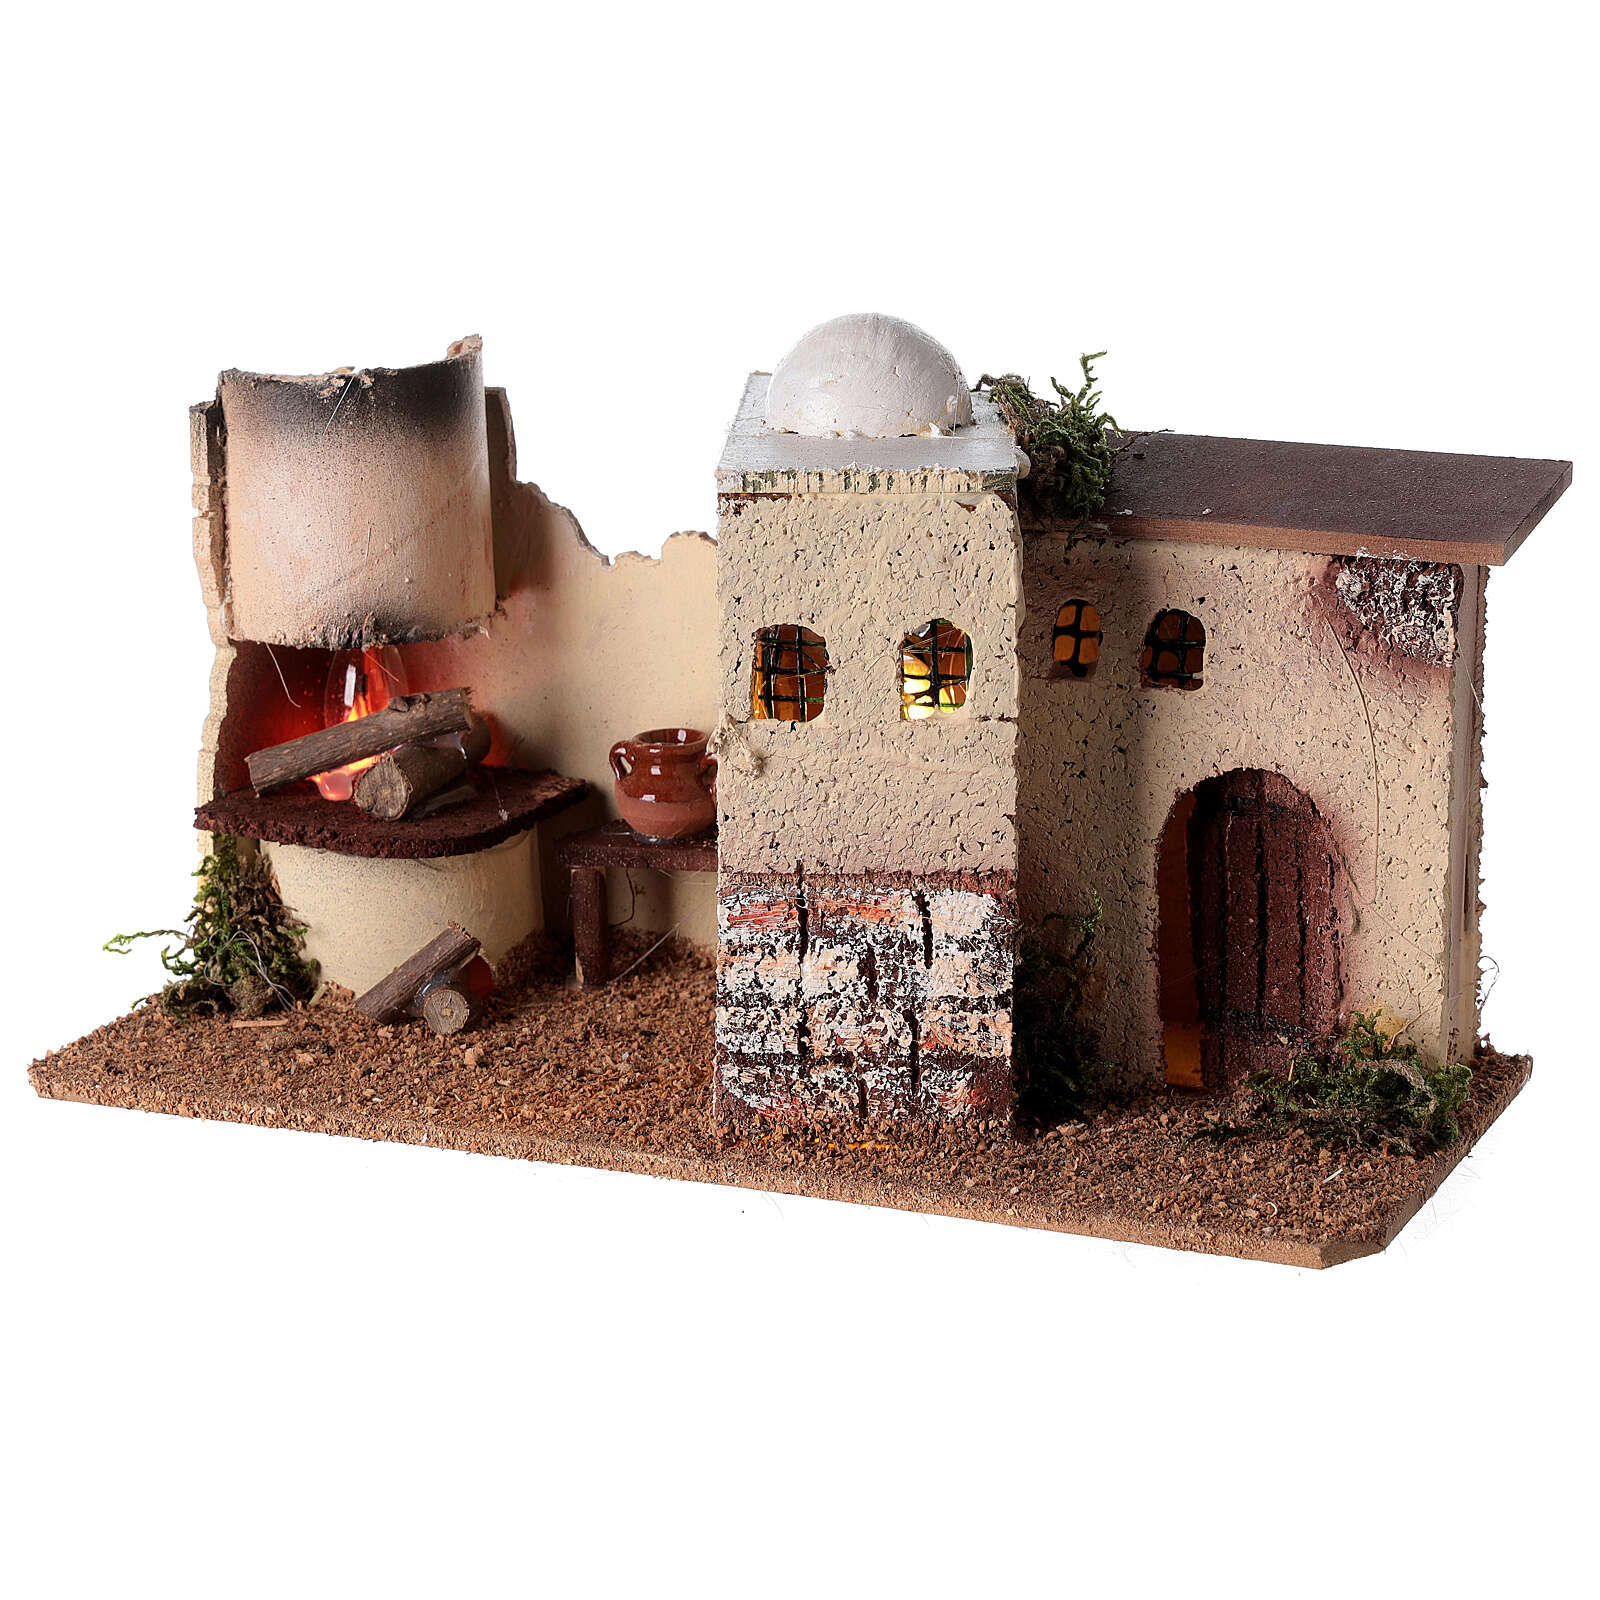 Nativity scene house with lighting and flickering fire 15x35x16 for Nativity scene 8-10 cm 4